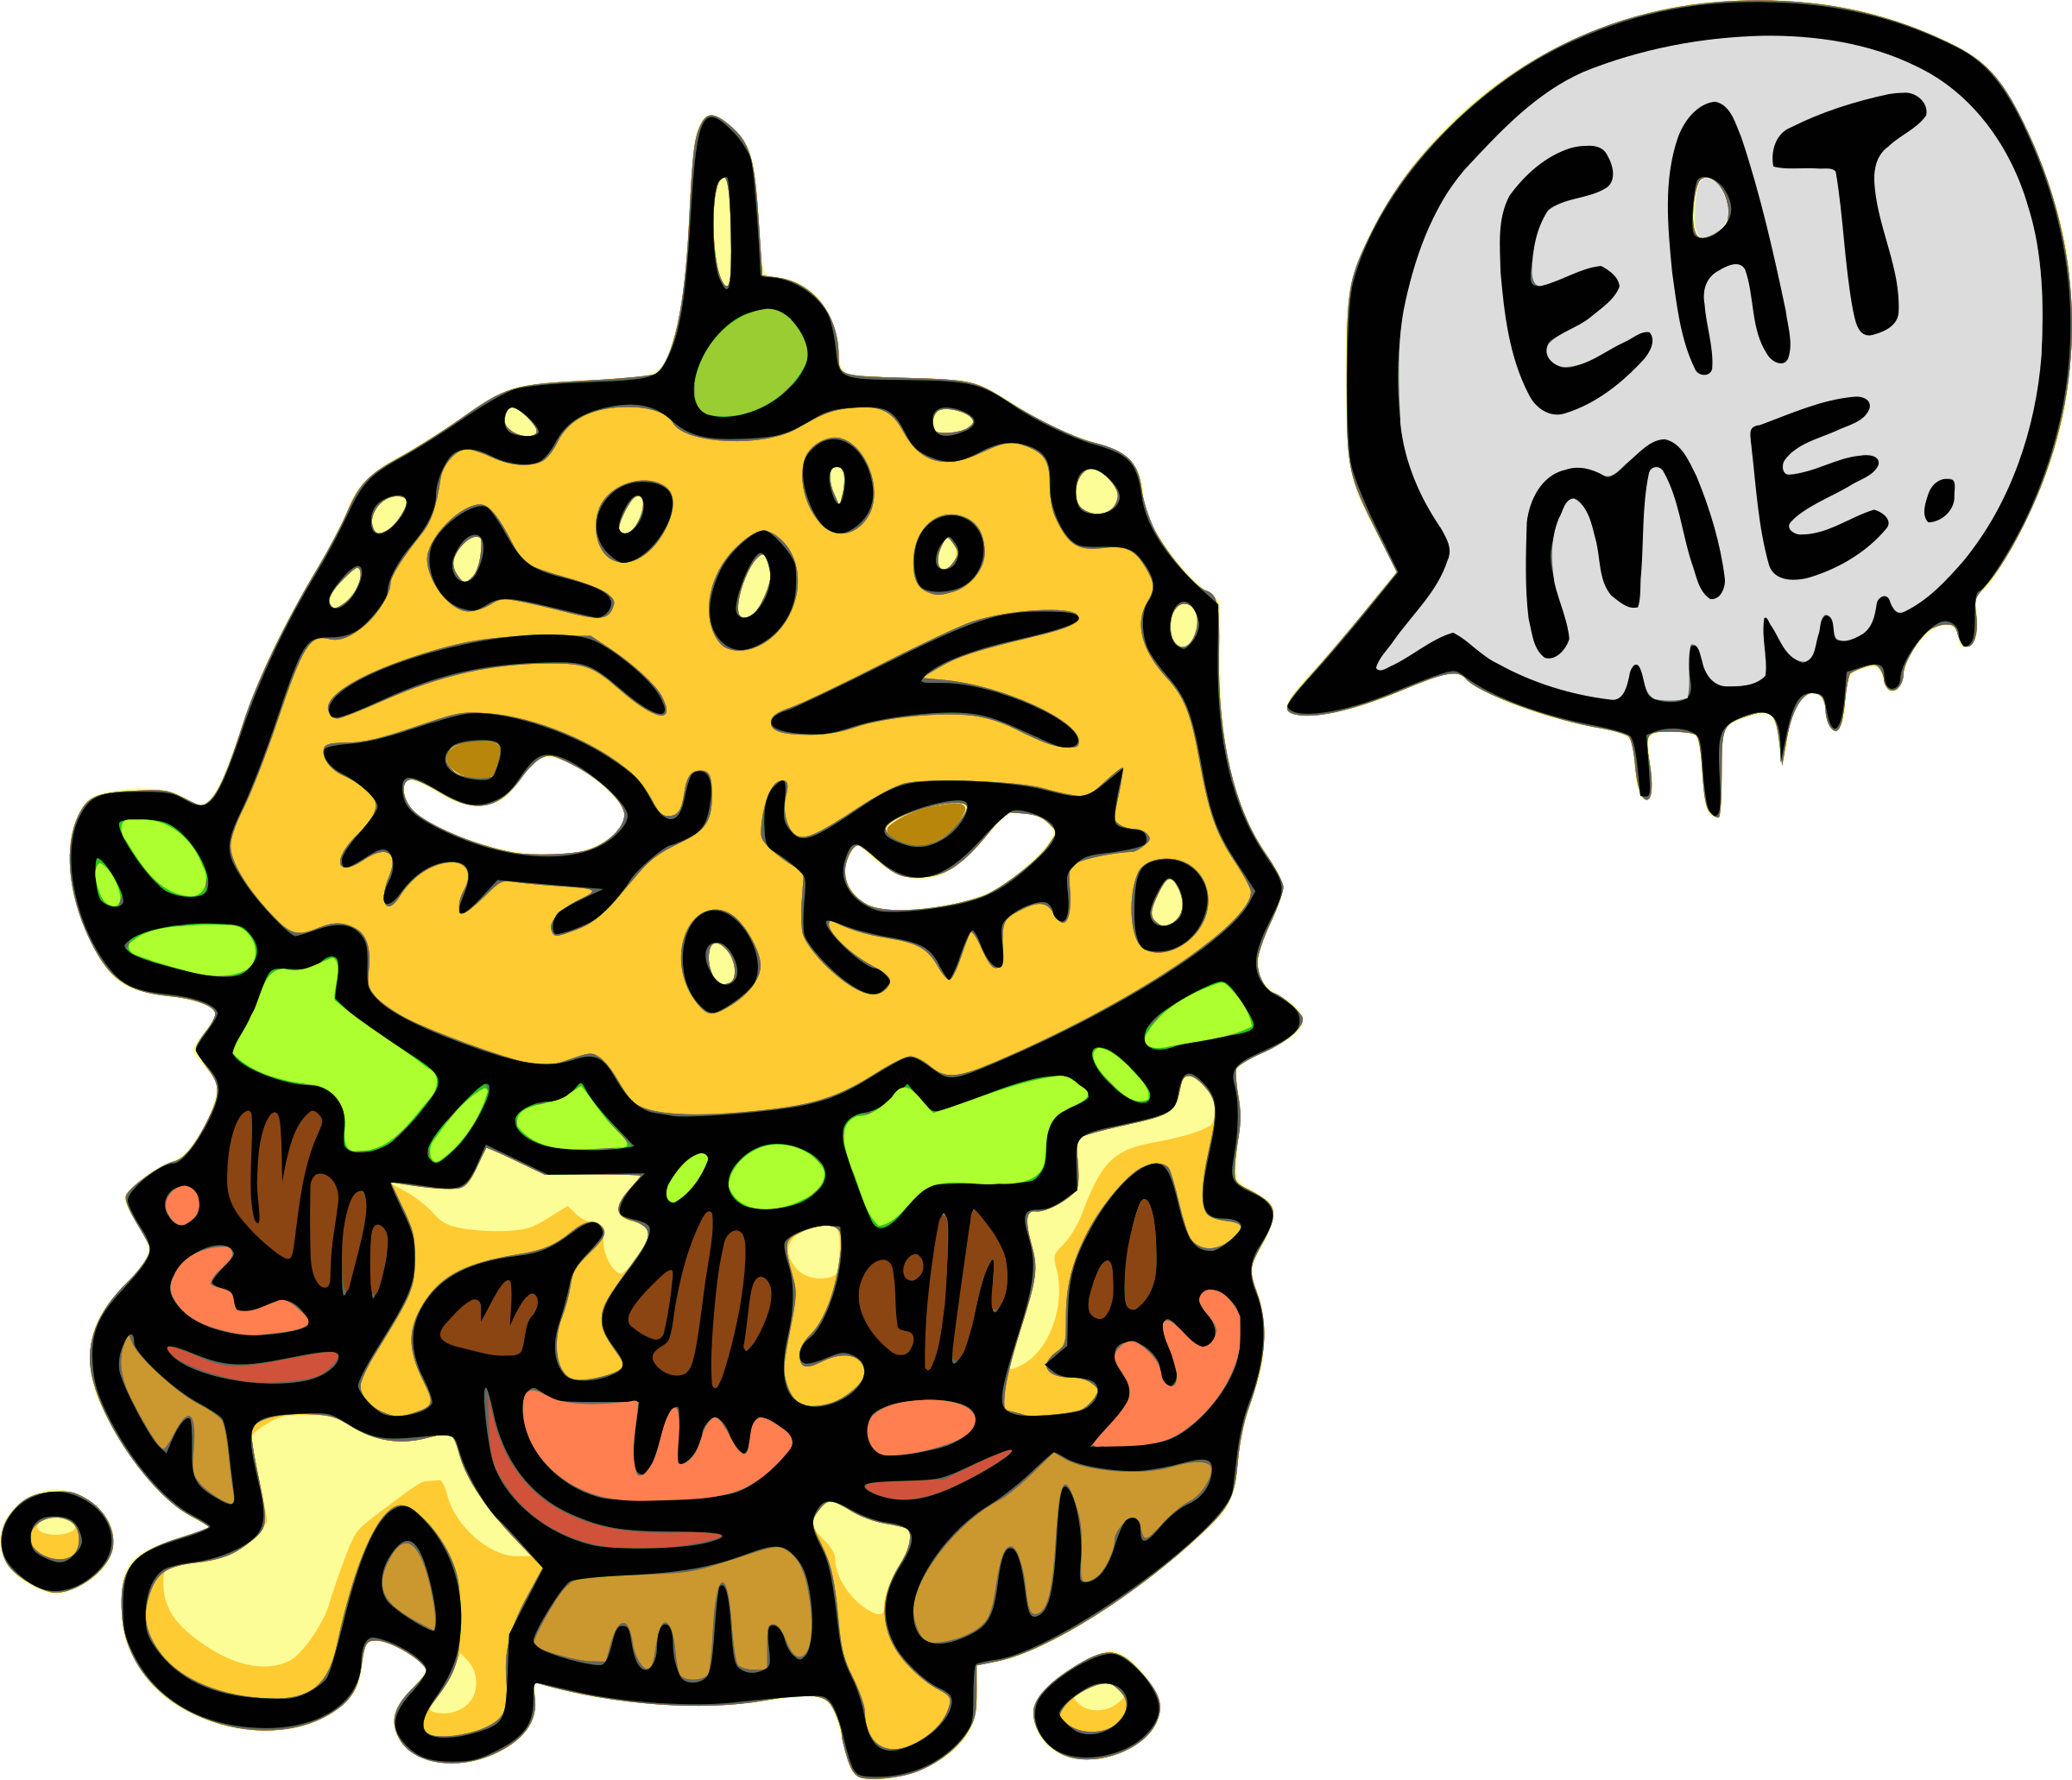 Eat This Burger by Ghost Guts